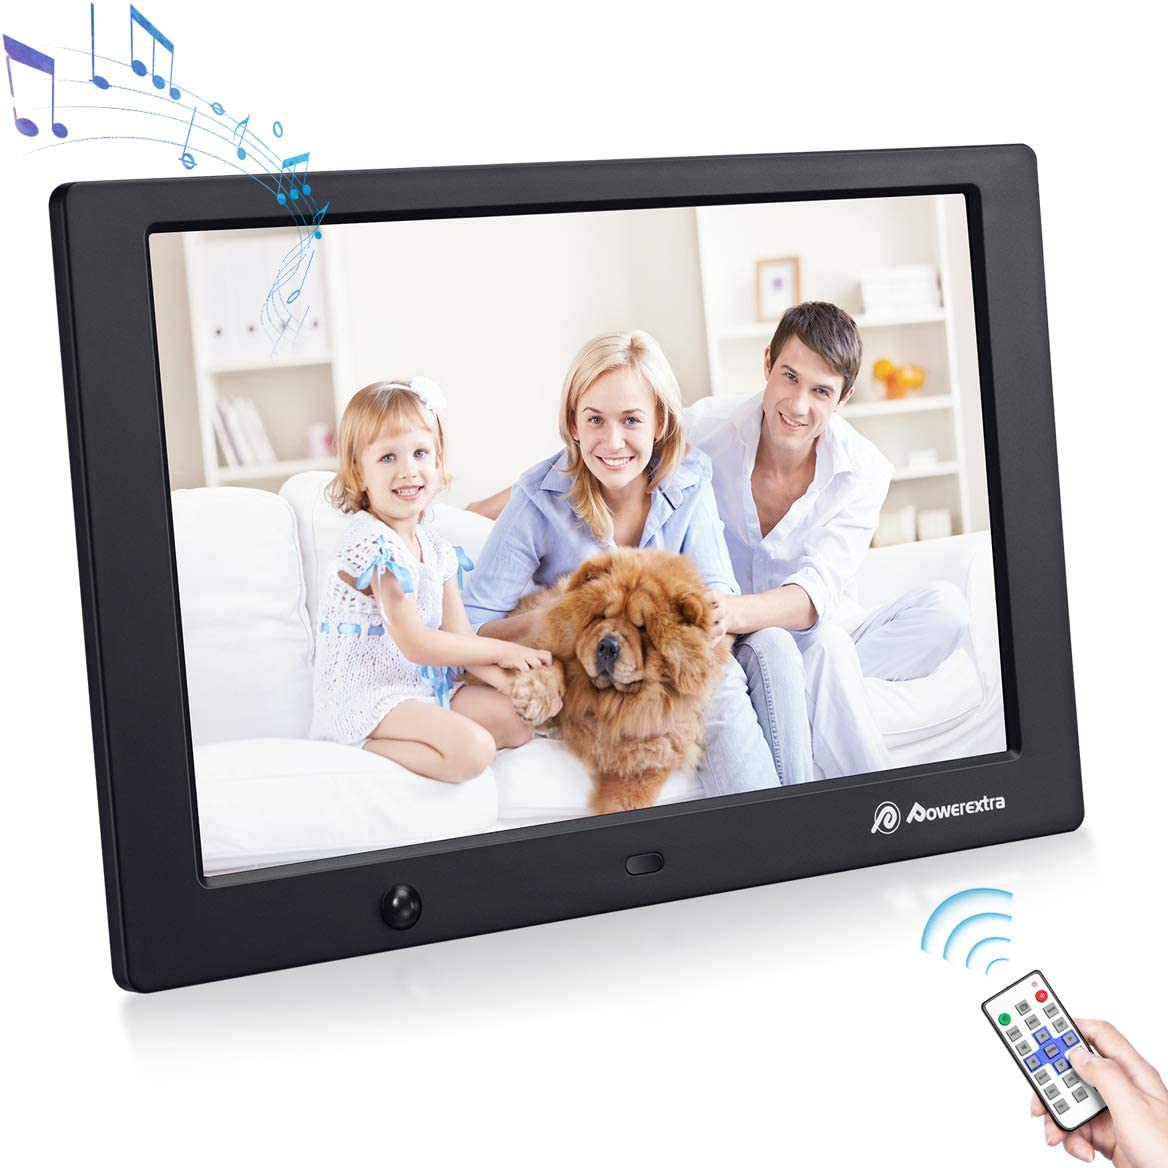 10.1 Inch Digital Photo Frame with 1920 1080 HD IPS Screen Remote Control Display Picture Music Video Calendar Alarm Timer on Off by SD Memory Card U Disk Support 64G USB Device Black